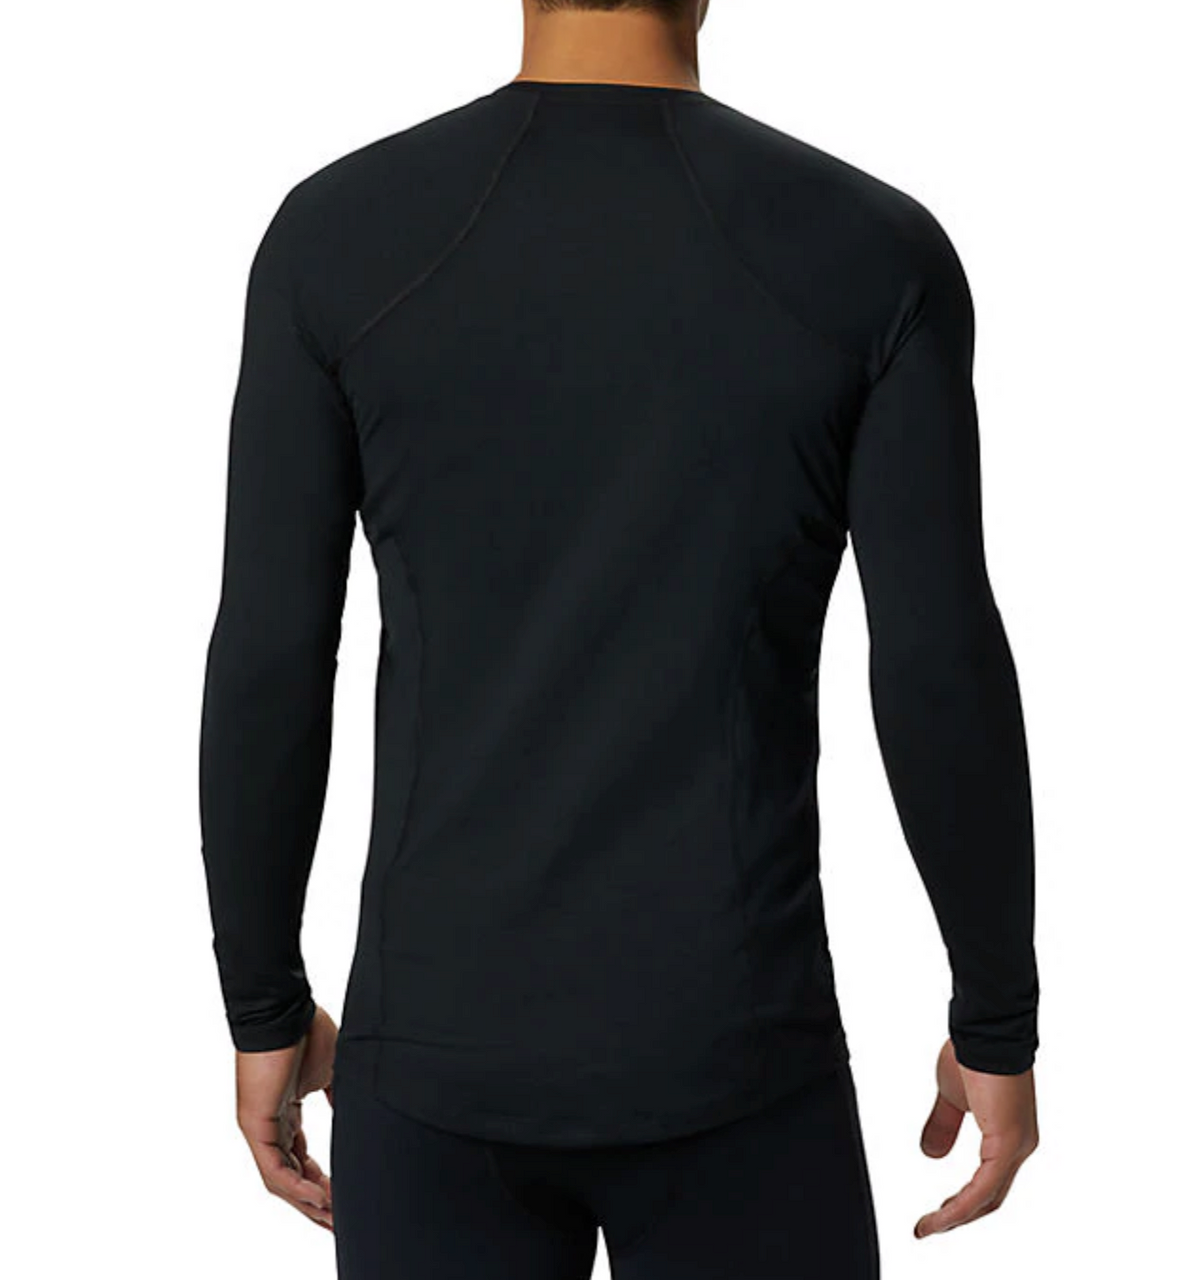 Columbia Midweight Stretch Baselayer M LS Top